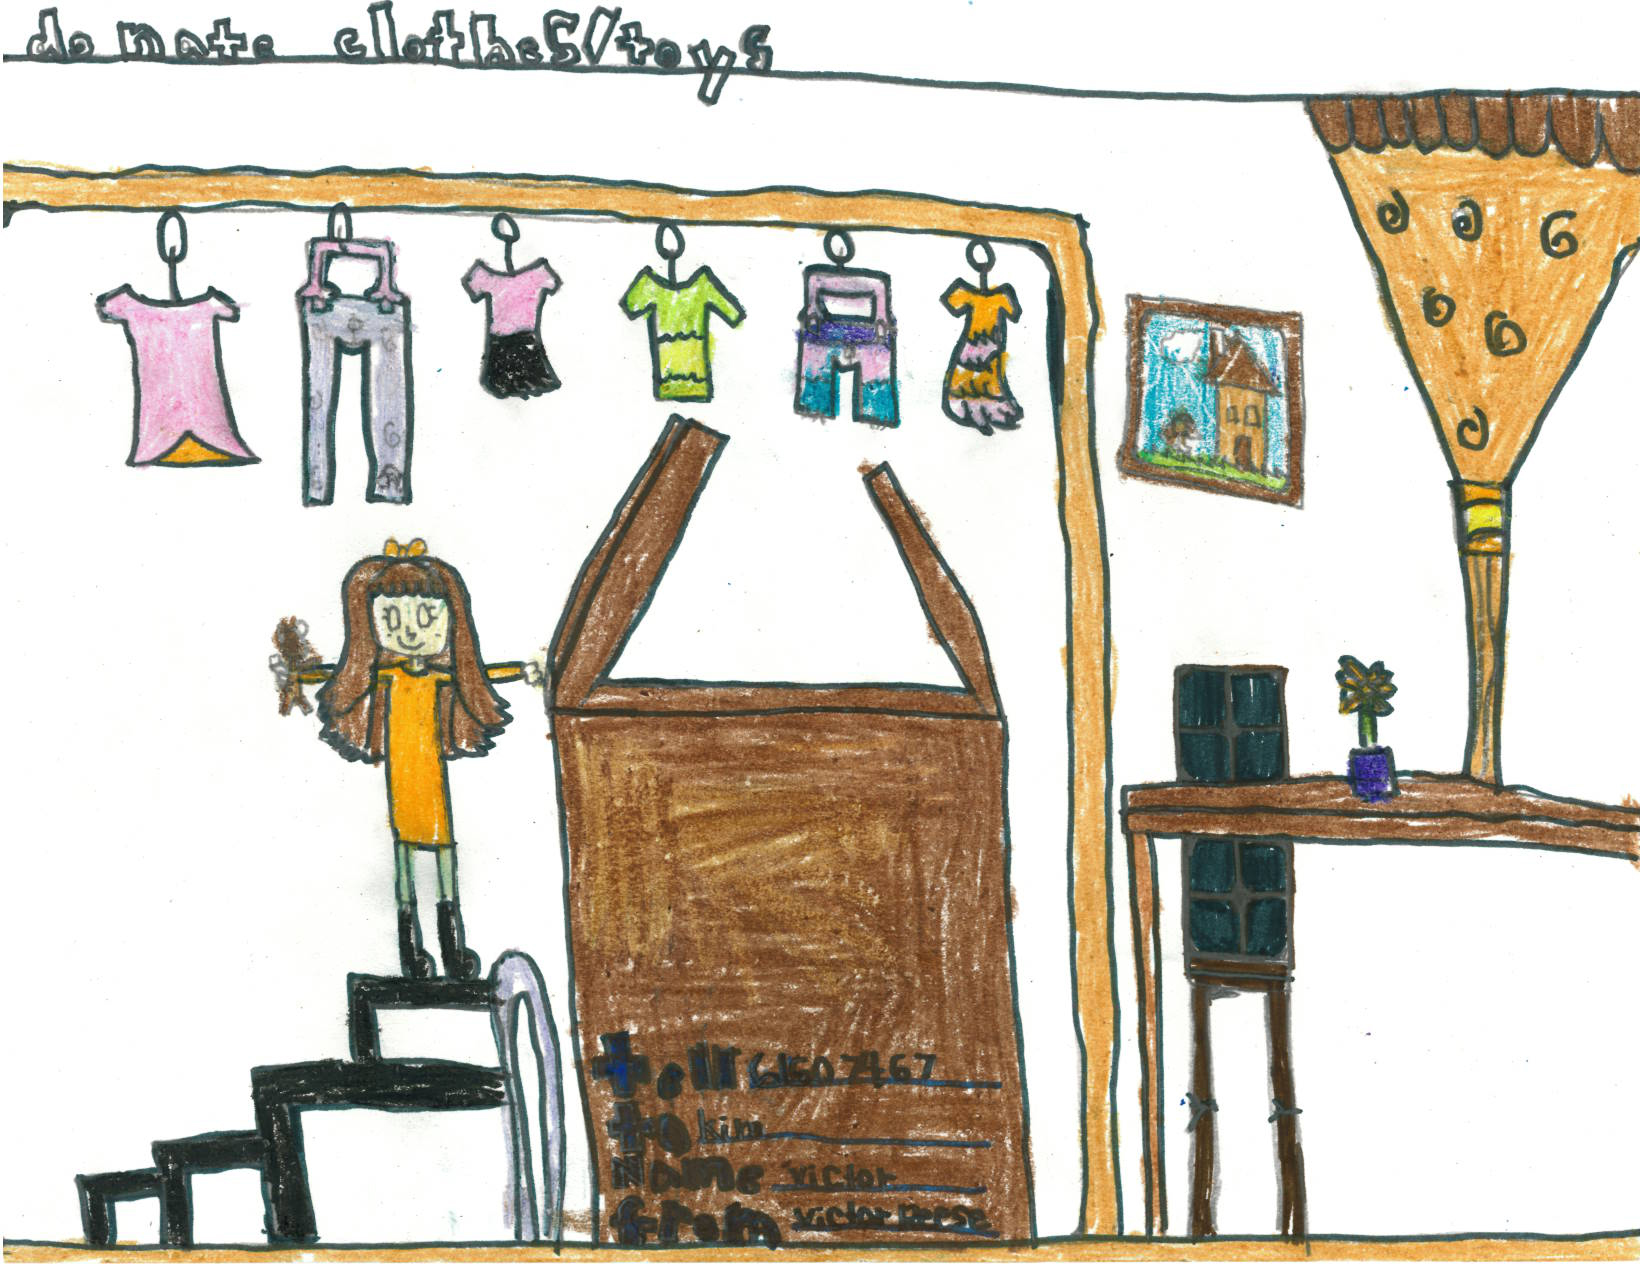 Children's drawing of a girl in a closet, with clothes hanging on the rack. It asks for clothing donations.